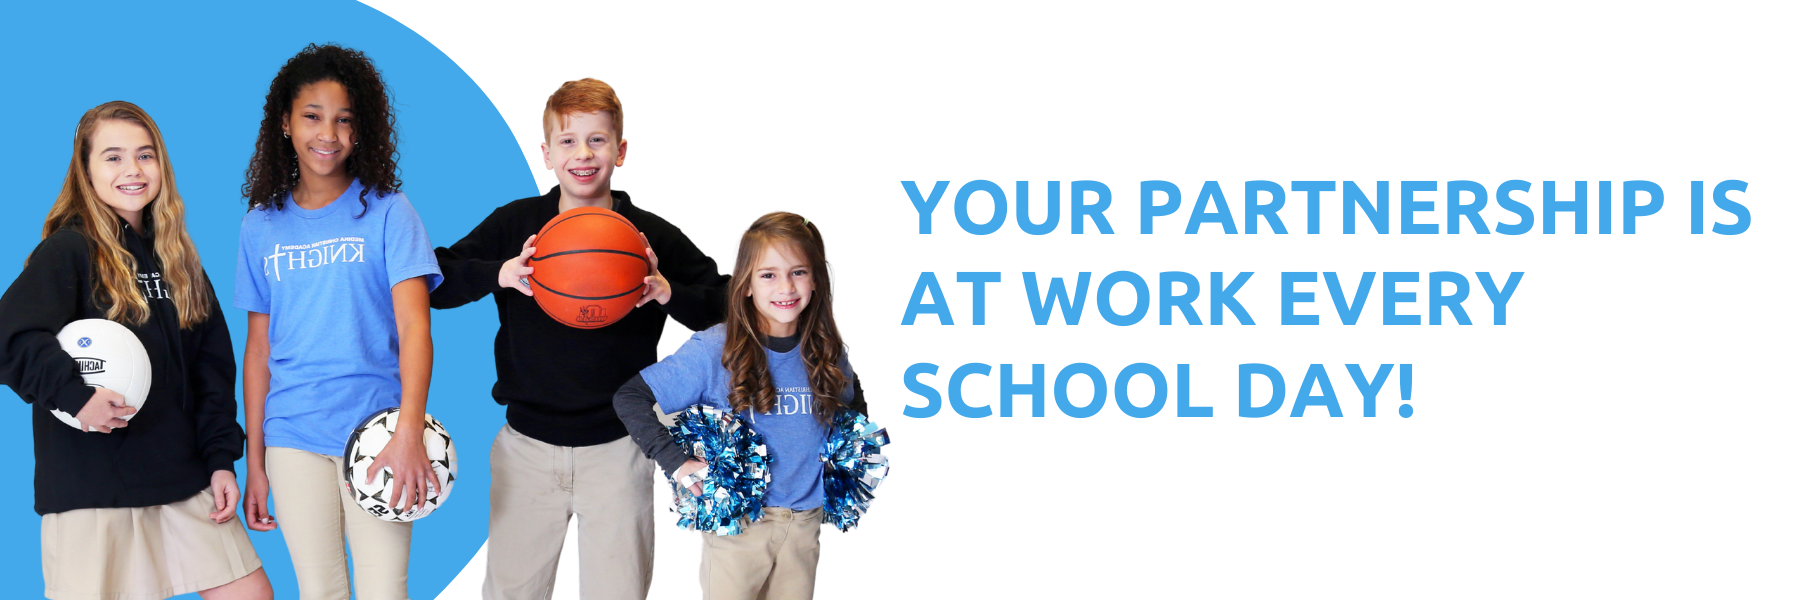 your partnership is at work every school day